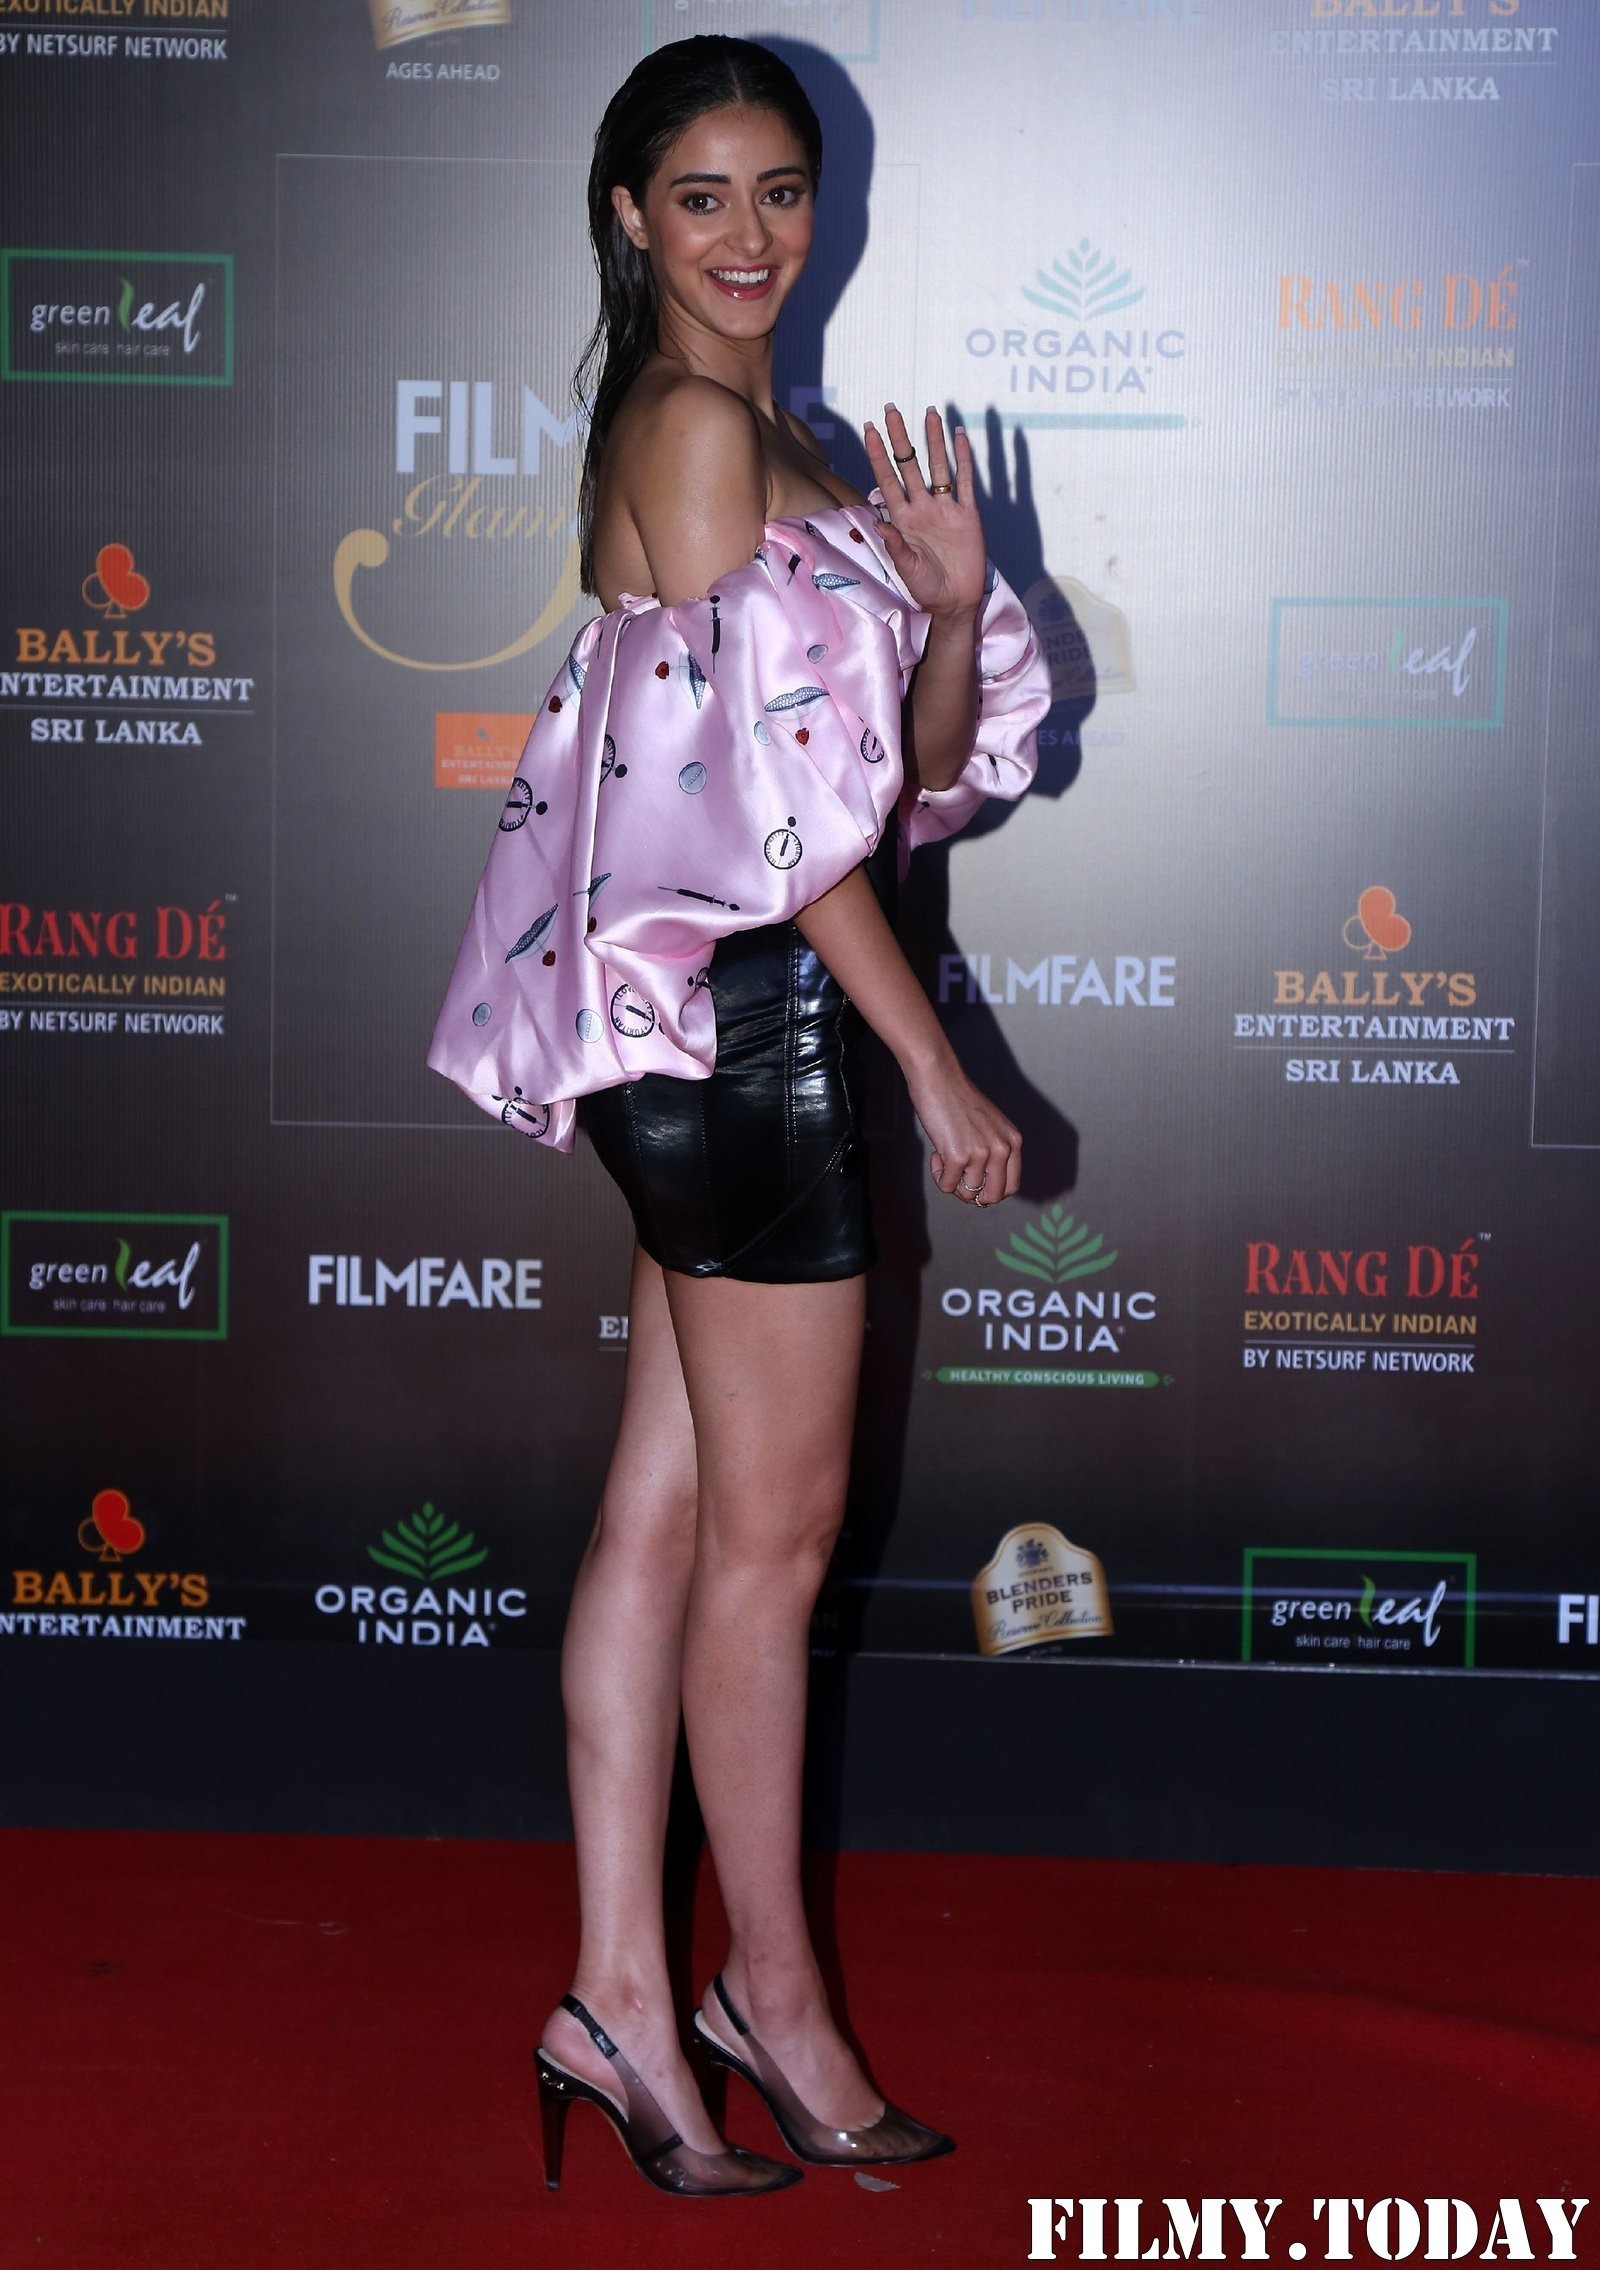 Ananya Pandey - Photos: Celebs At Filmfare Glamour & Style Awards 2019 At Taj Lands End | Picture 1704577